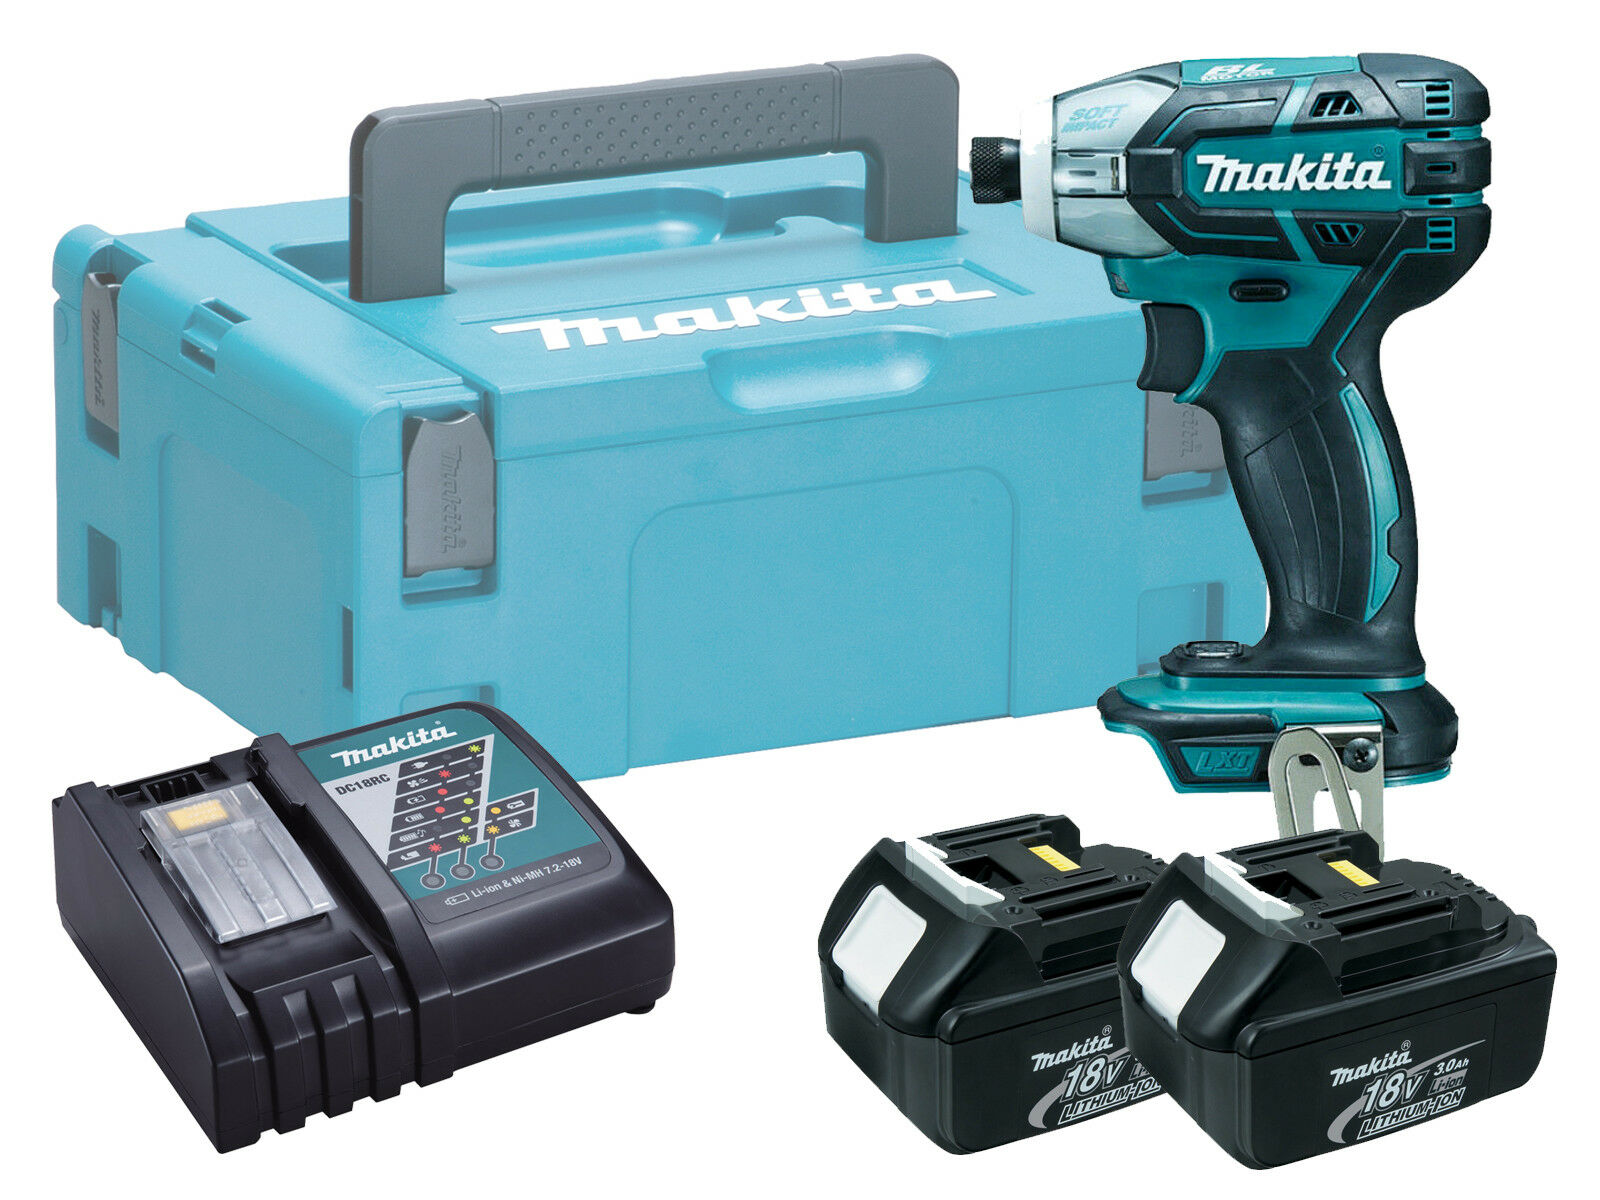 Makita DTS141 18V Brushless Cordless Oil Pulse Driver - 3.0ah Kit